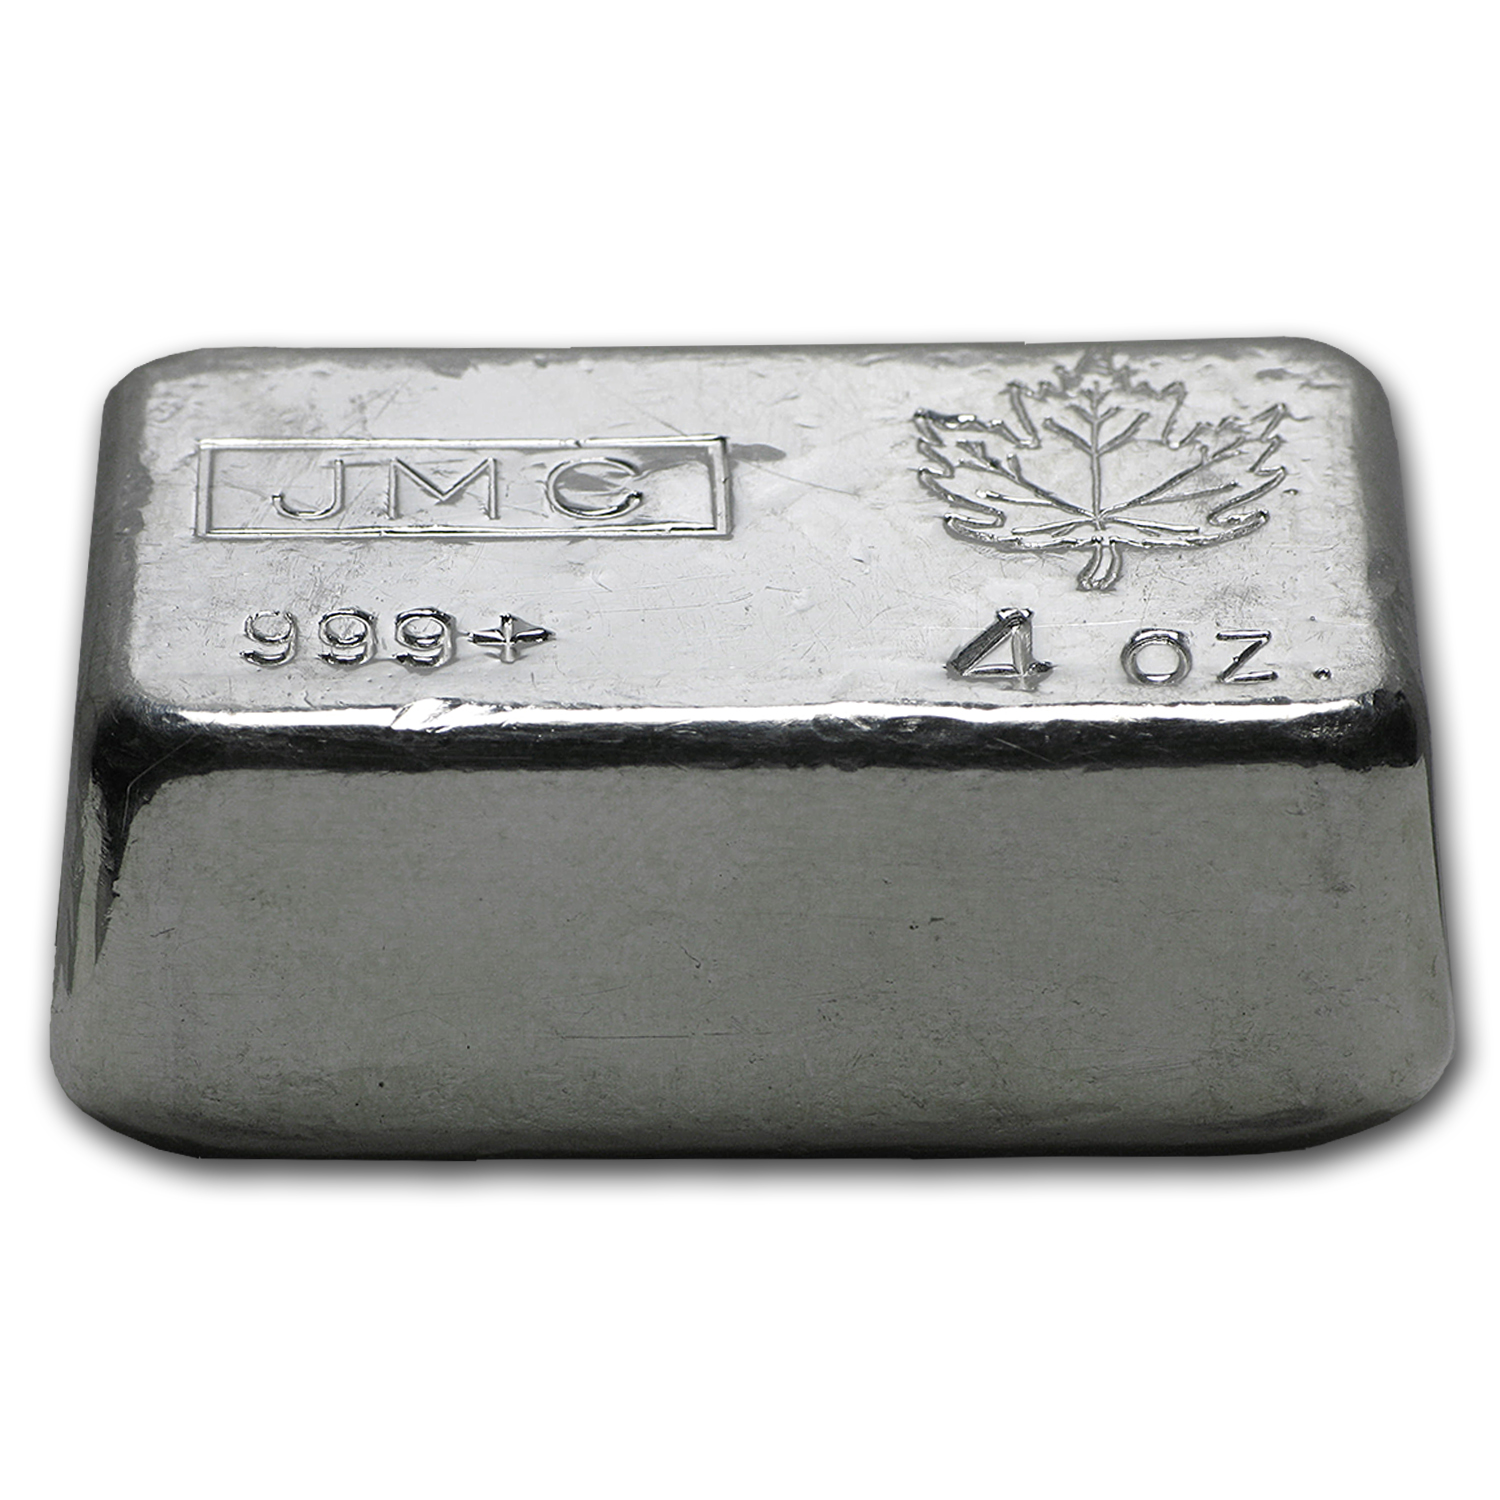 4 oz Silver Bars - Johnson Matthey (Poured/Canada)